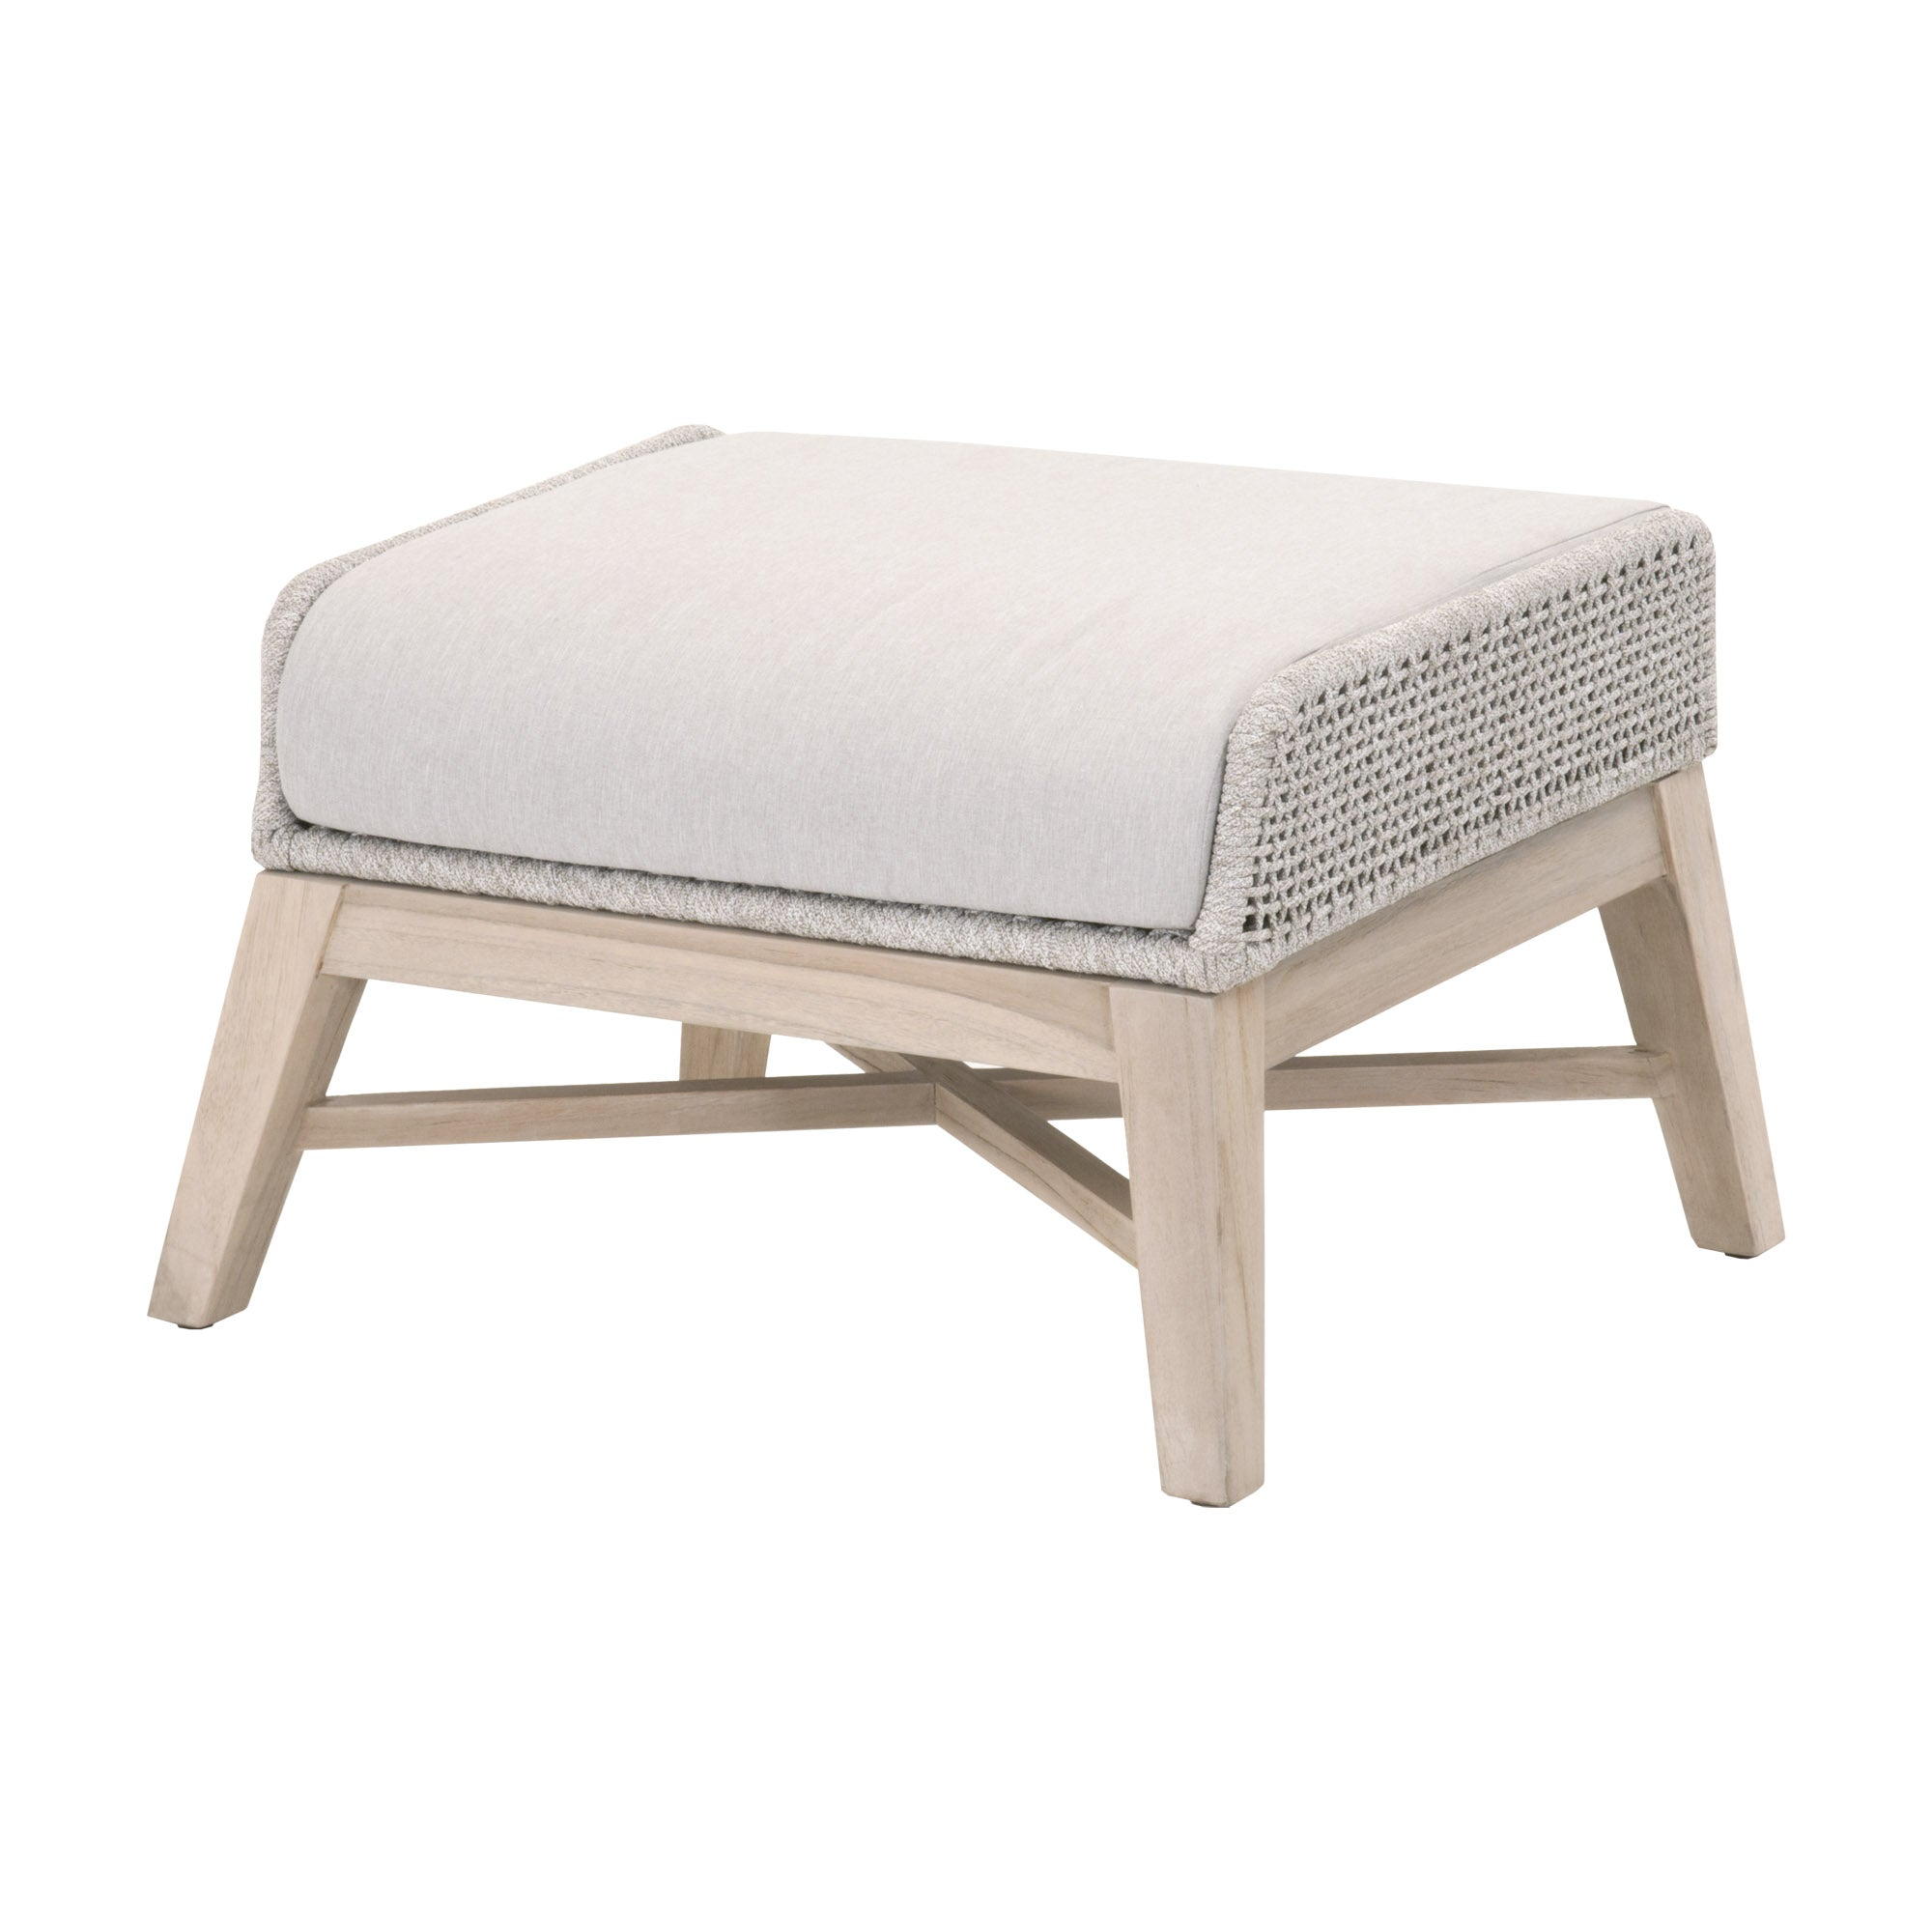 Essentials for Living-Tapestry Outdoor Footstool-Outdoor Ottomans-MODTEMPO